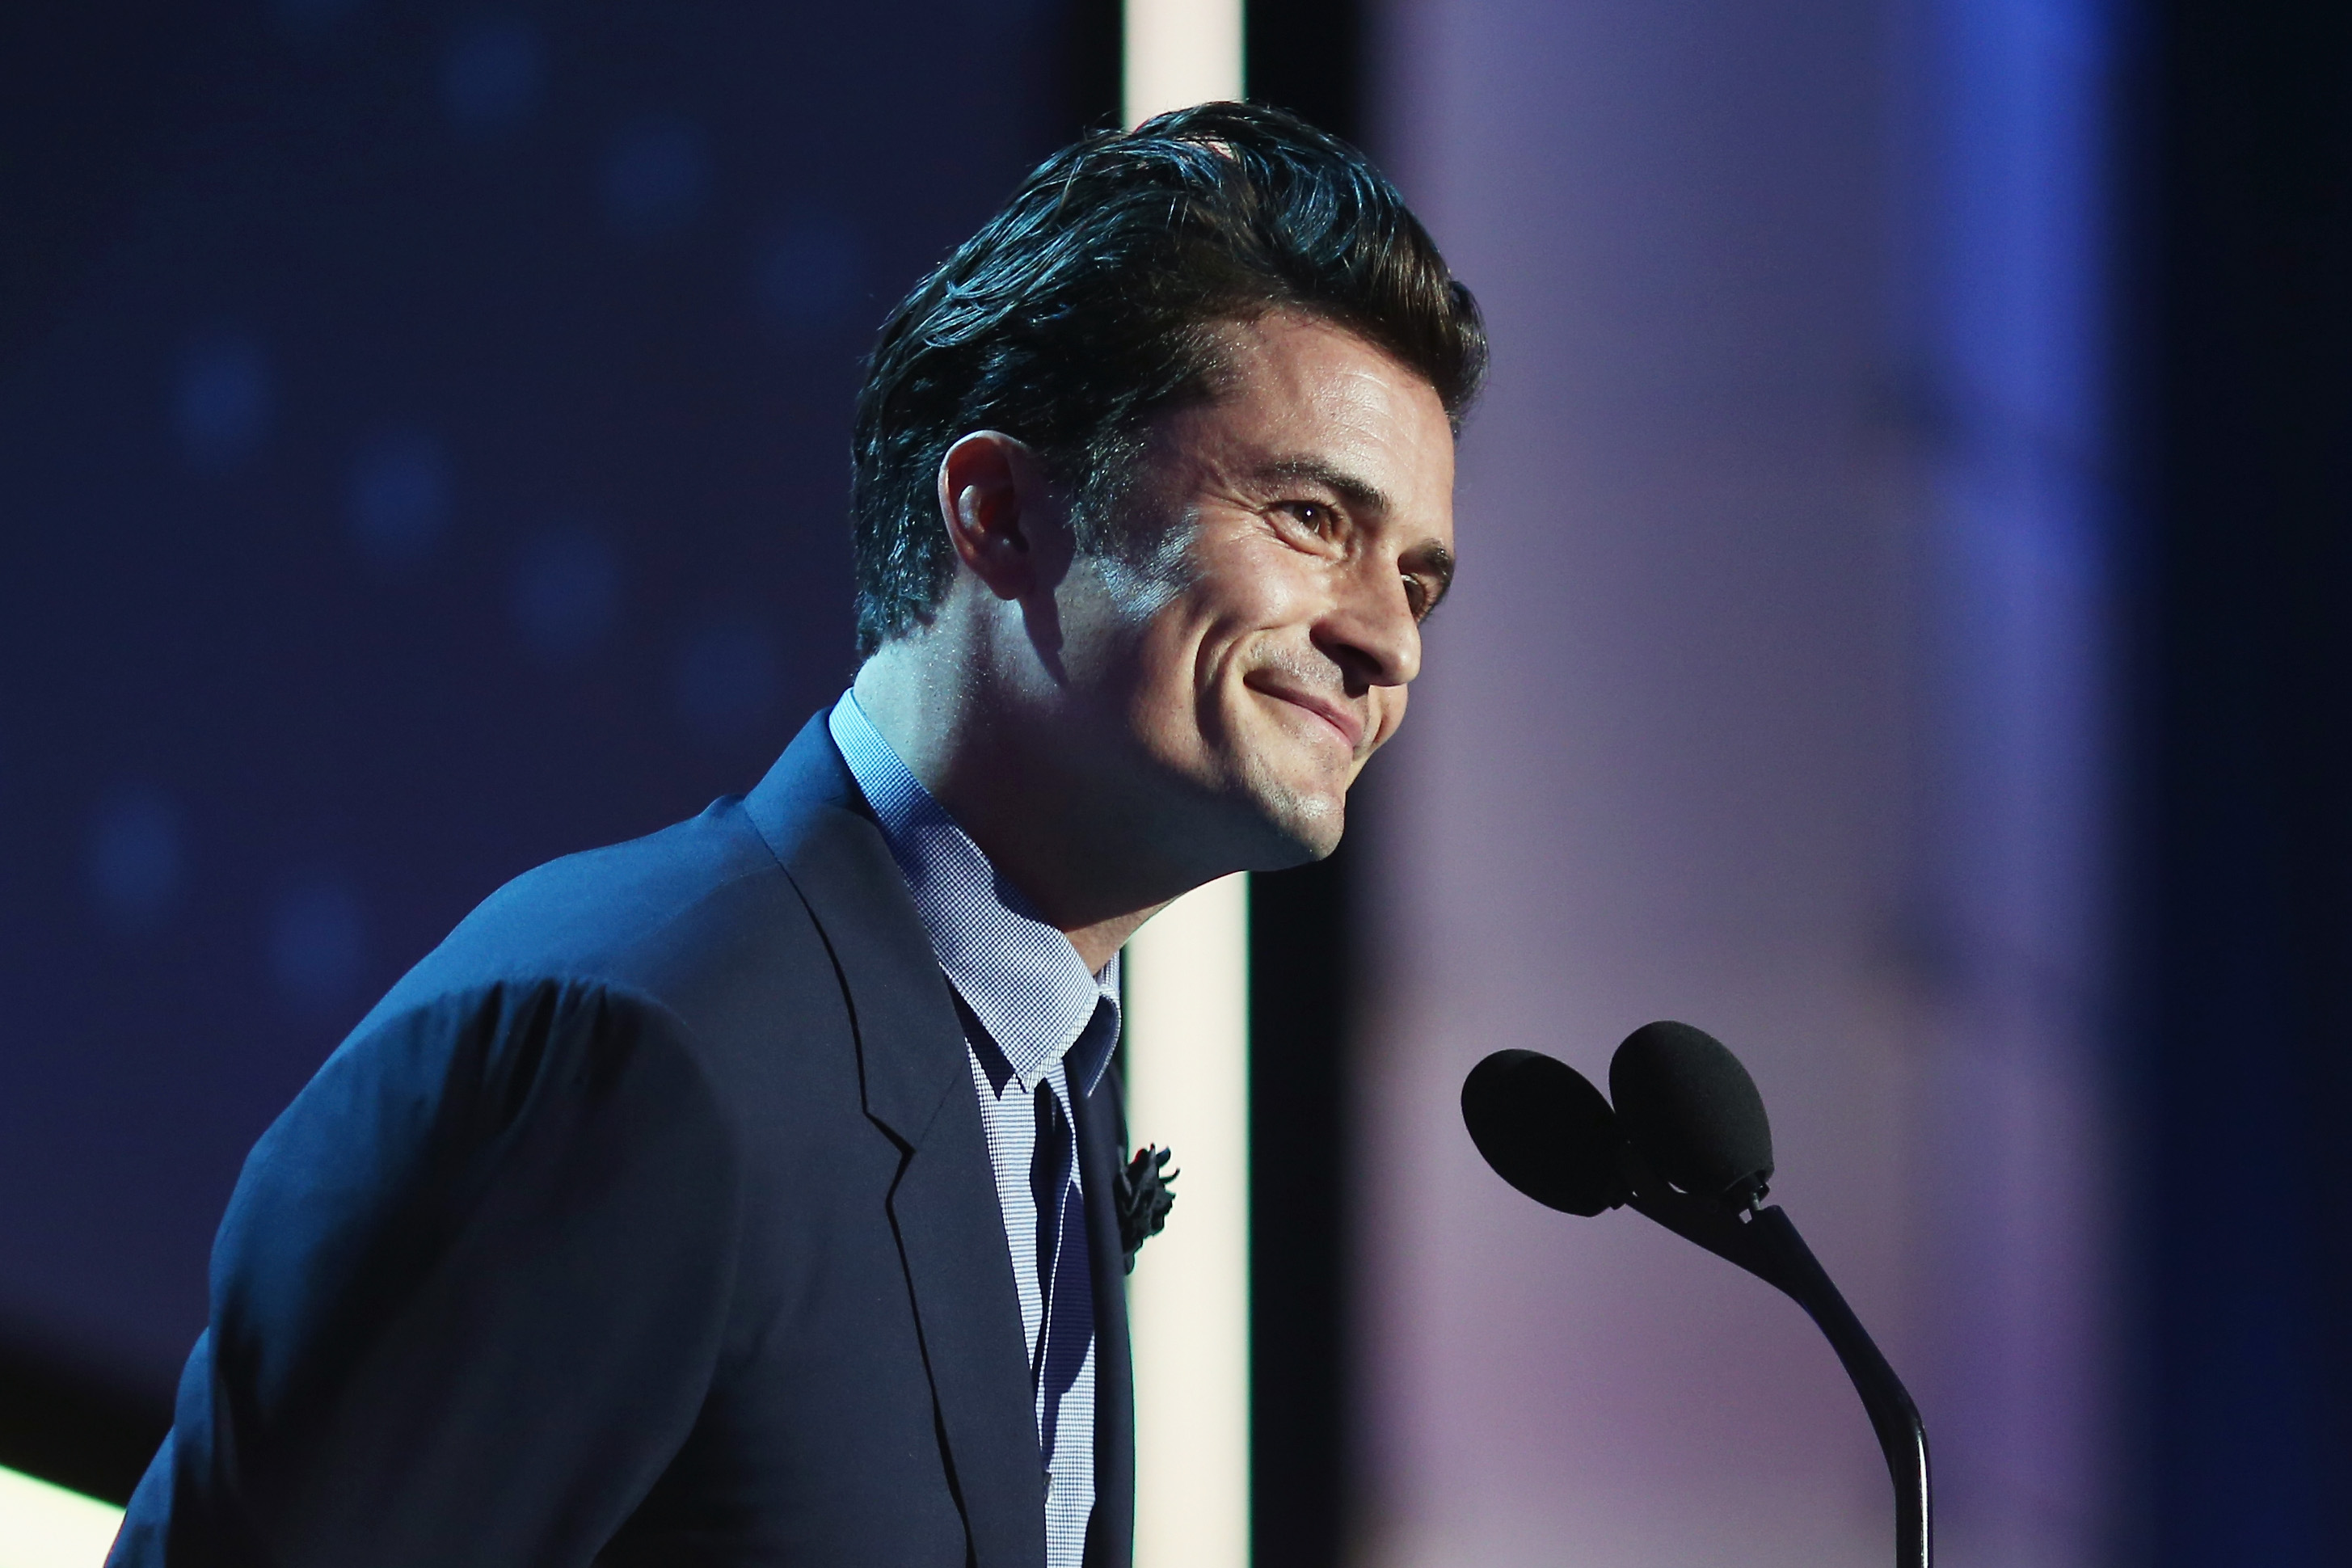 SANTA MONICA, CA - JANUARY 17:  Actor Orlando Bloom speaks onstage at  the 21st Annual Critics' Choice Awards at Barker Hangar on January 17, 2016 in Santa Monica, California.  (Photo by Christopher Polk/Getty Images for The Critics' Choice Awards)